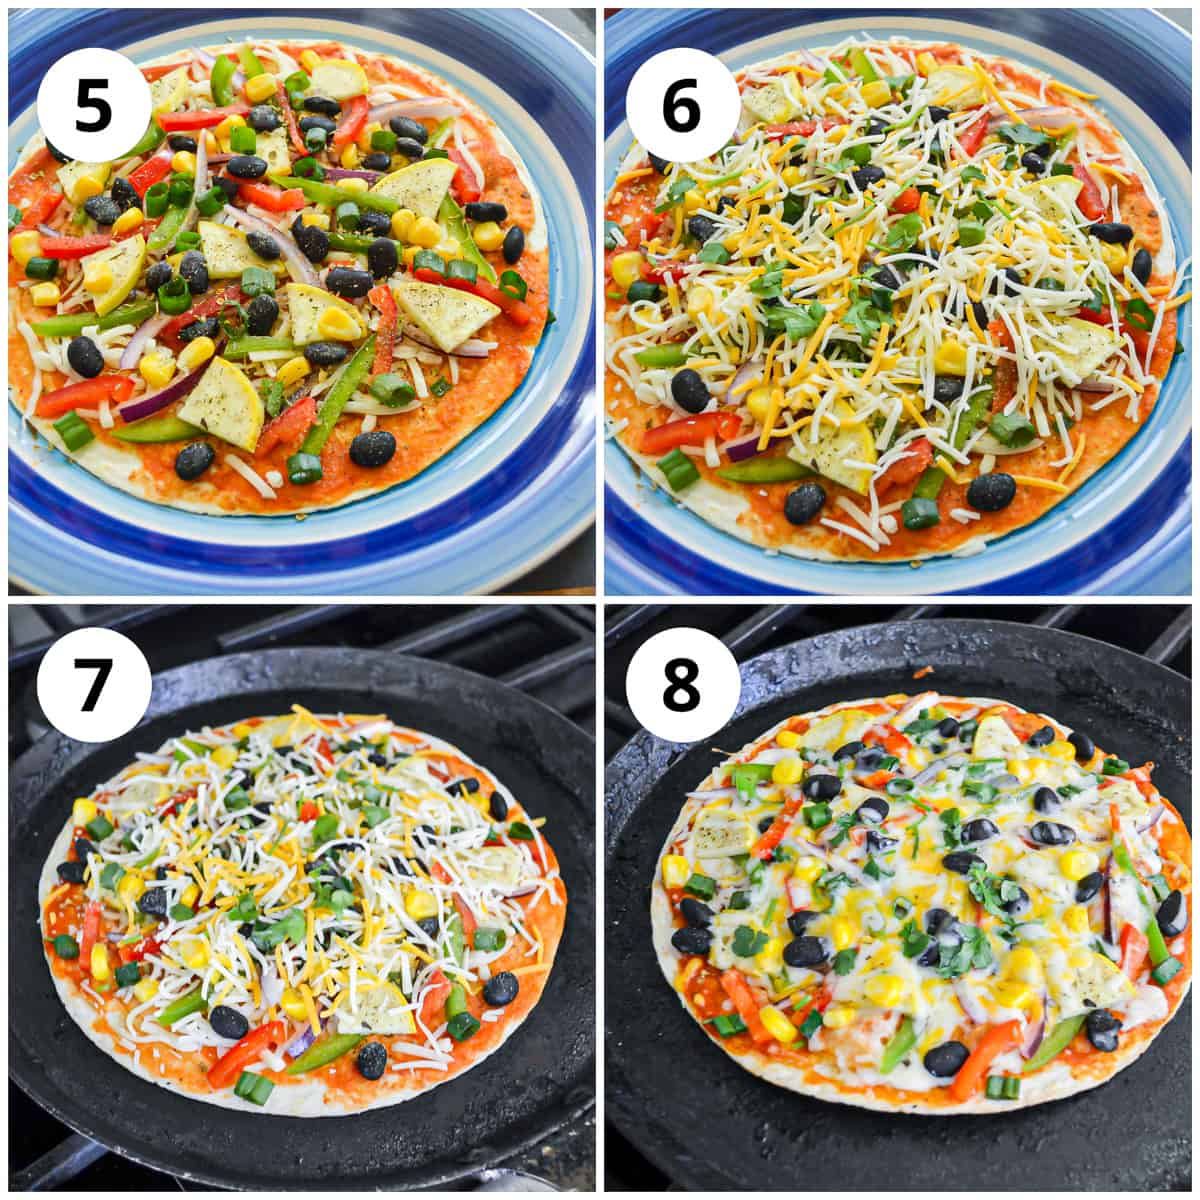 Shots showing how to top the pizza and cook it